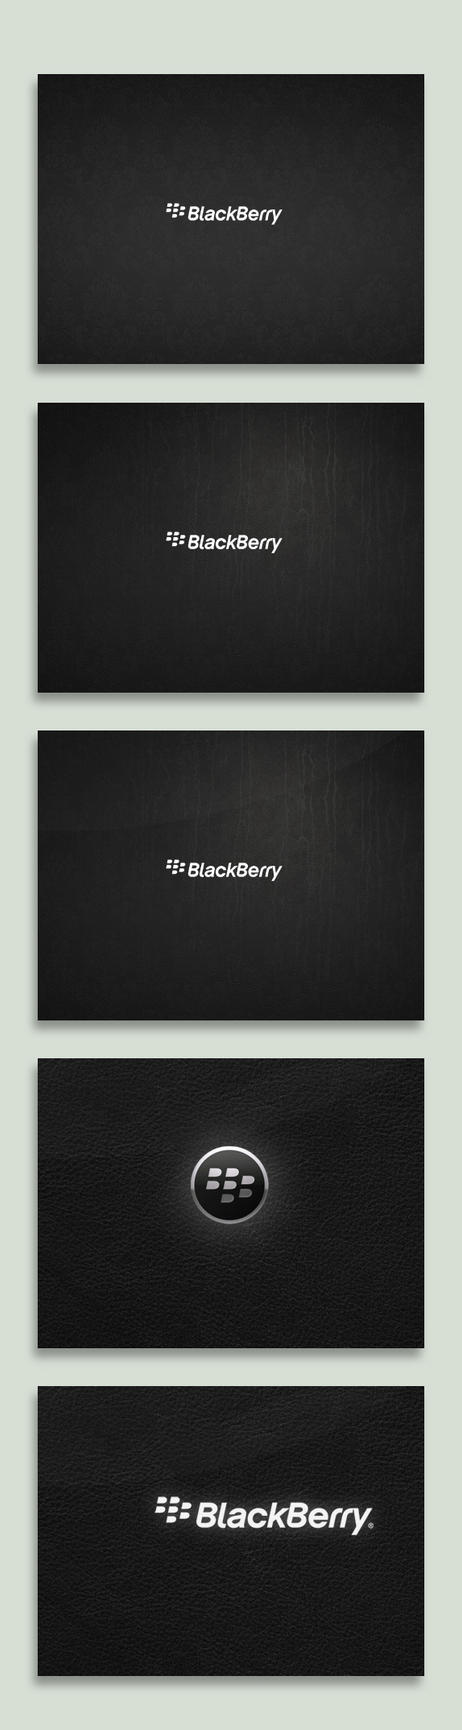 blackberry backgrounds. by hc-network